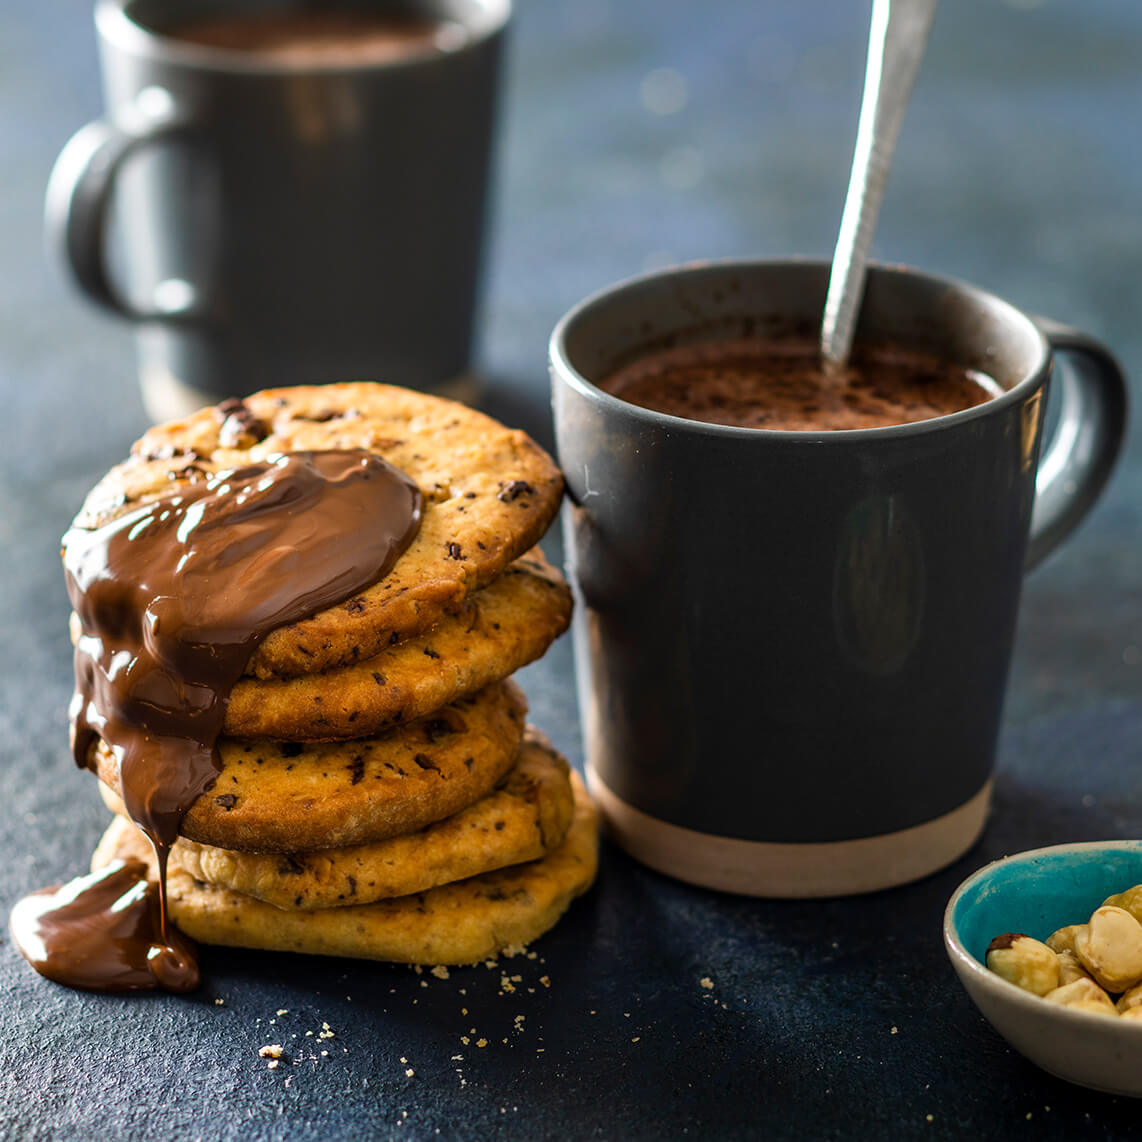 Chocolate and hazelnut biscuits